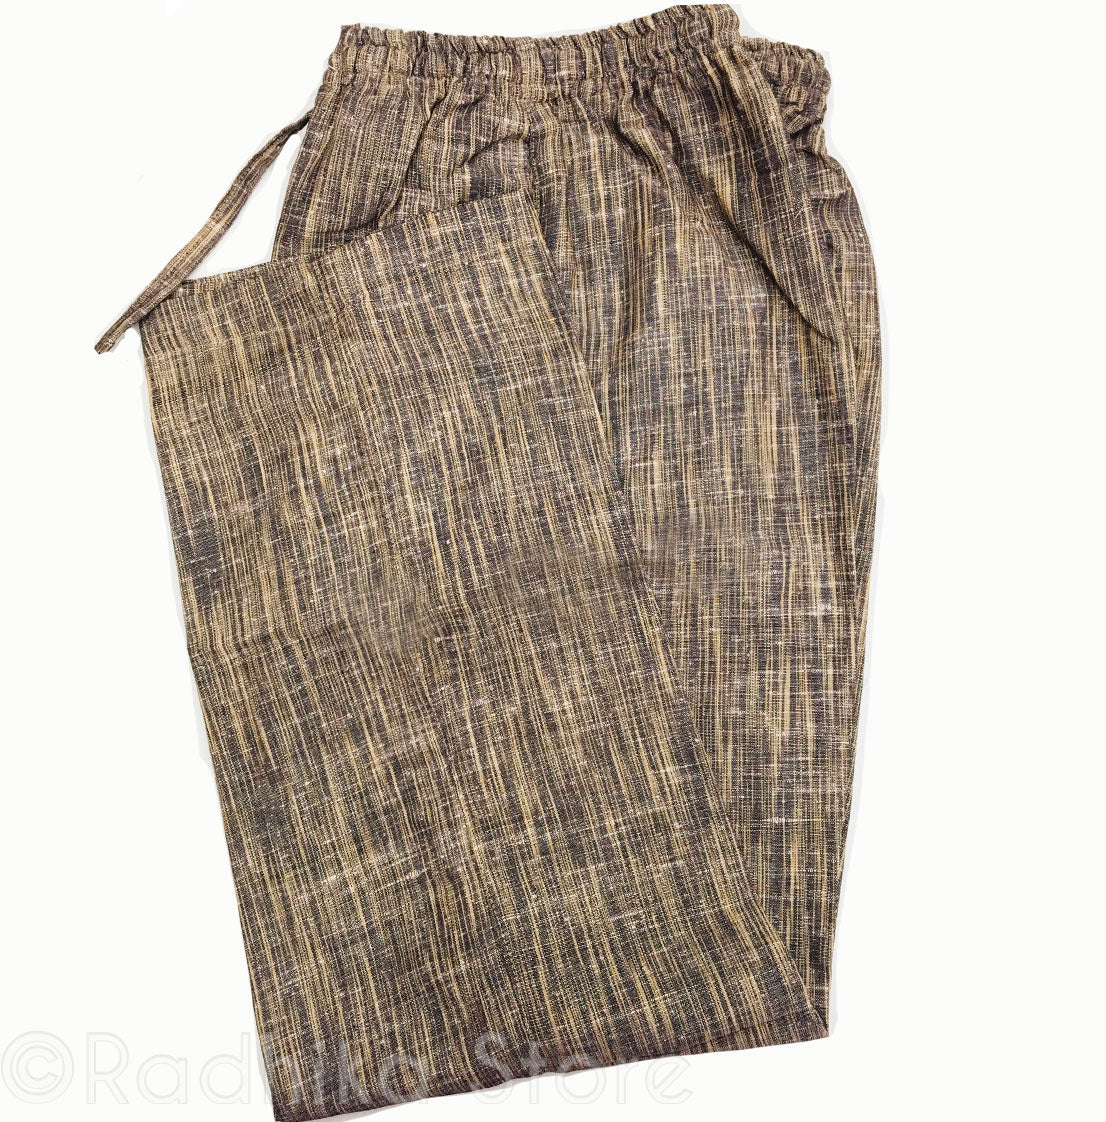 Jute Yogi Pants  -Black And Beige Tweed - Small and Large